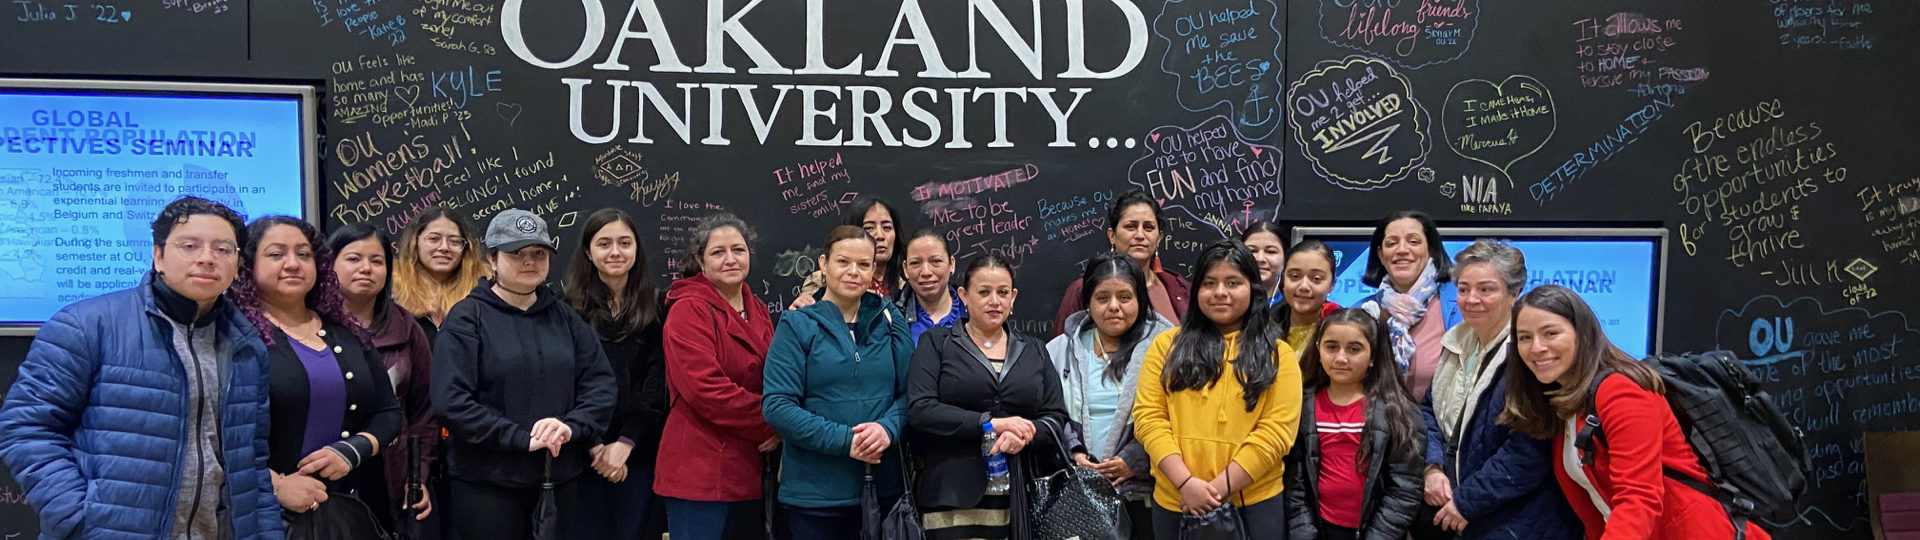 A large group of MIHC parents and students at an event at Oakland University.